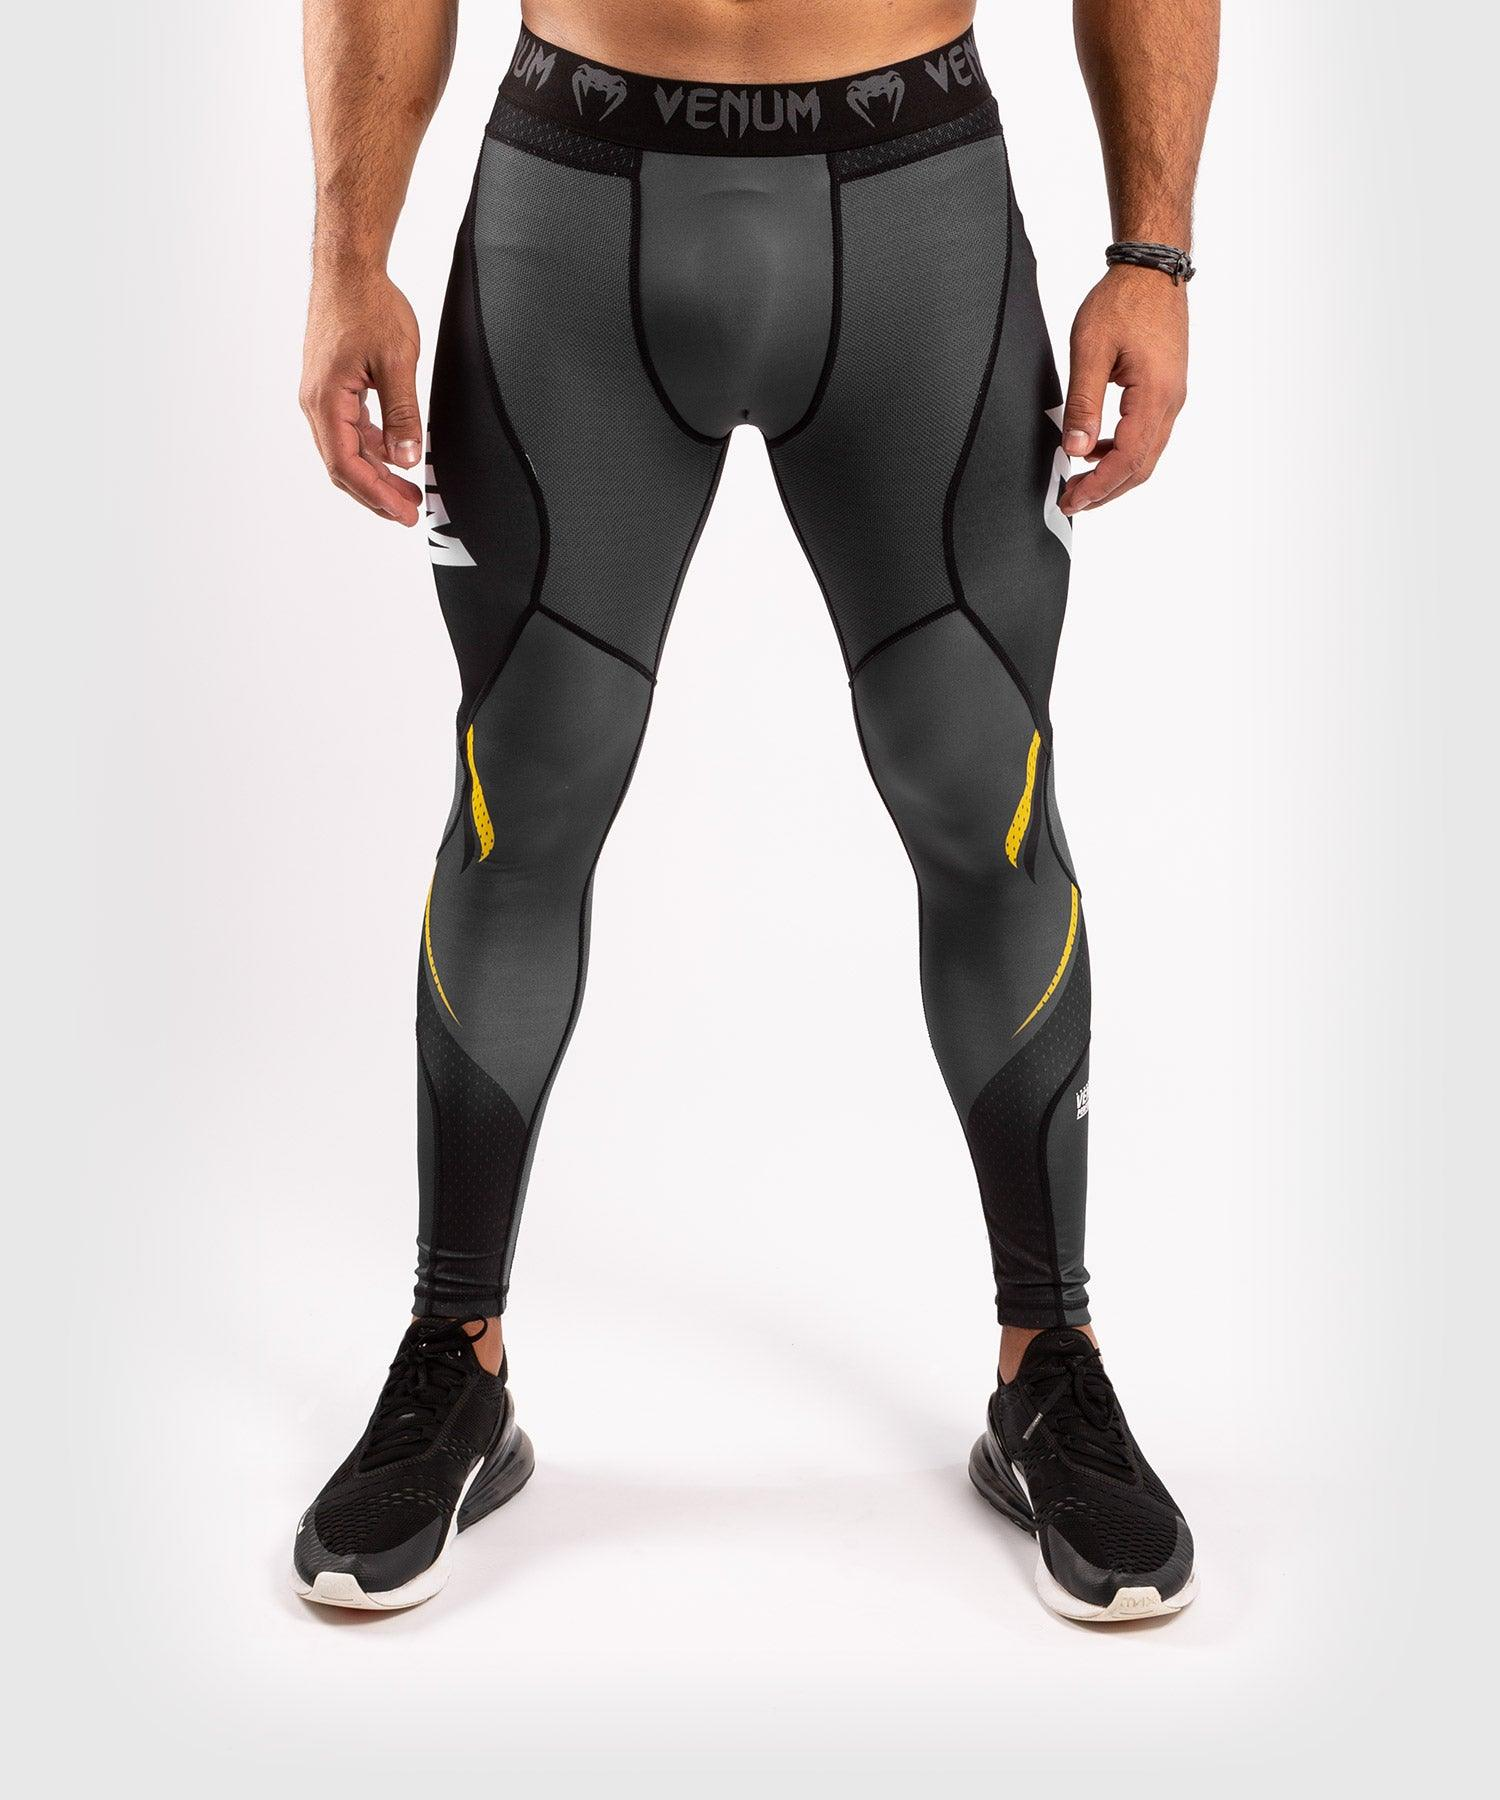 Venum ONE FC Impact Compresssion Tights - Grey/Yellow - picture 3